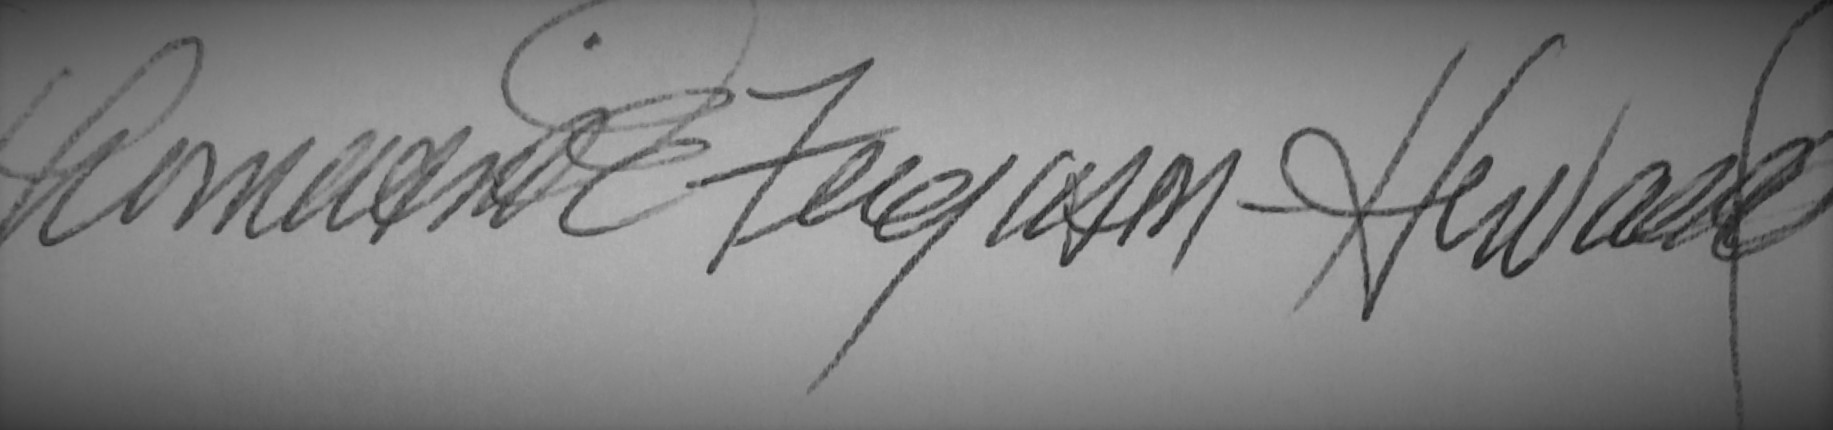 Thomasina Ferguson-Howard Signature